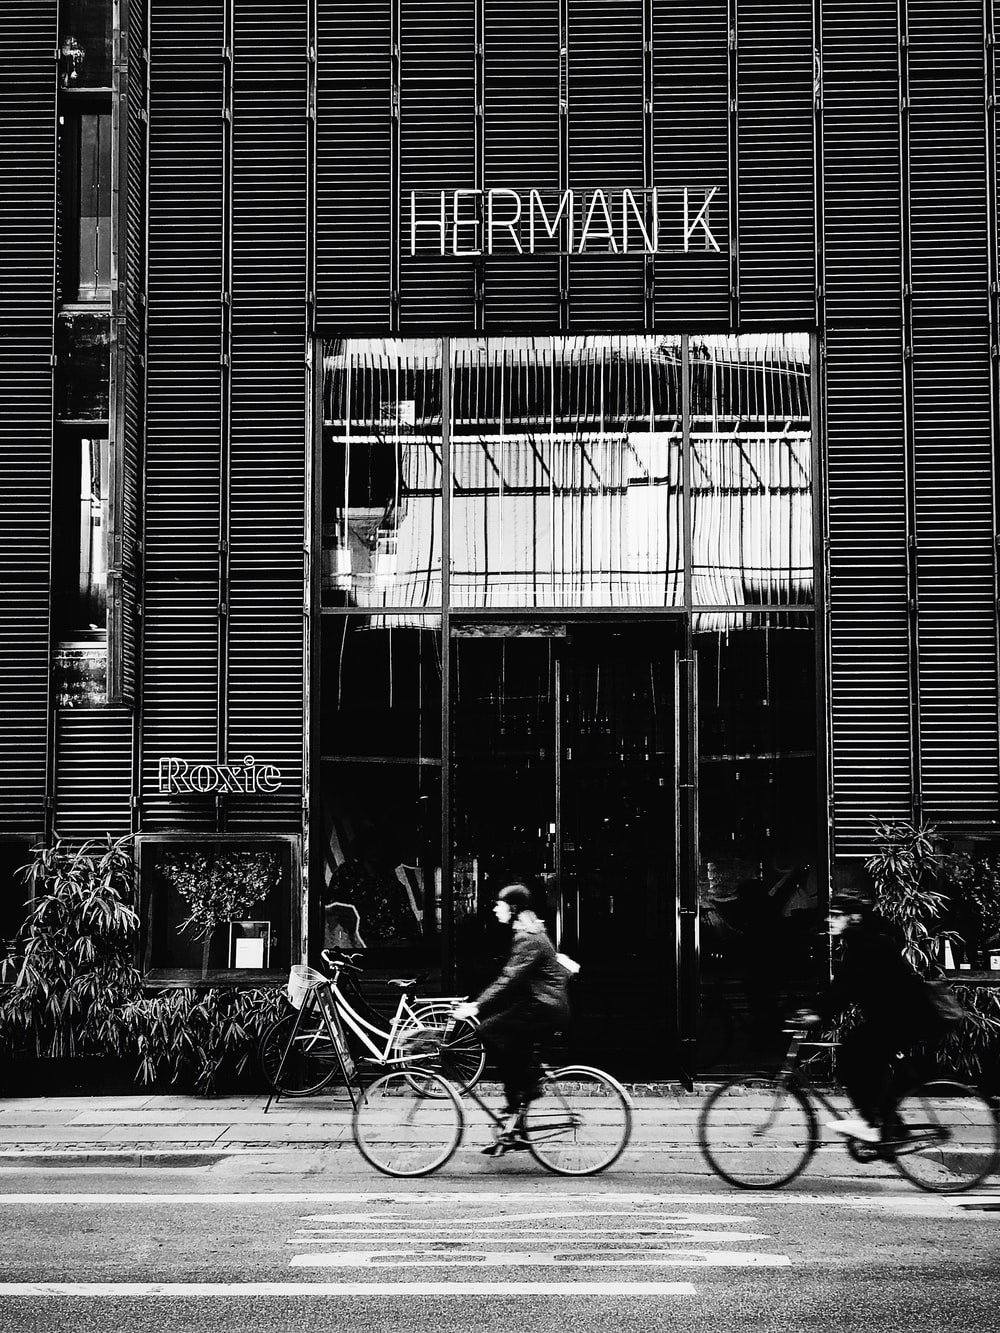 grayscale photography of Herman K shop front